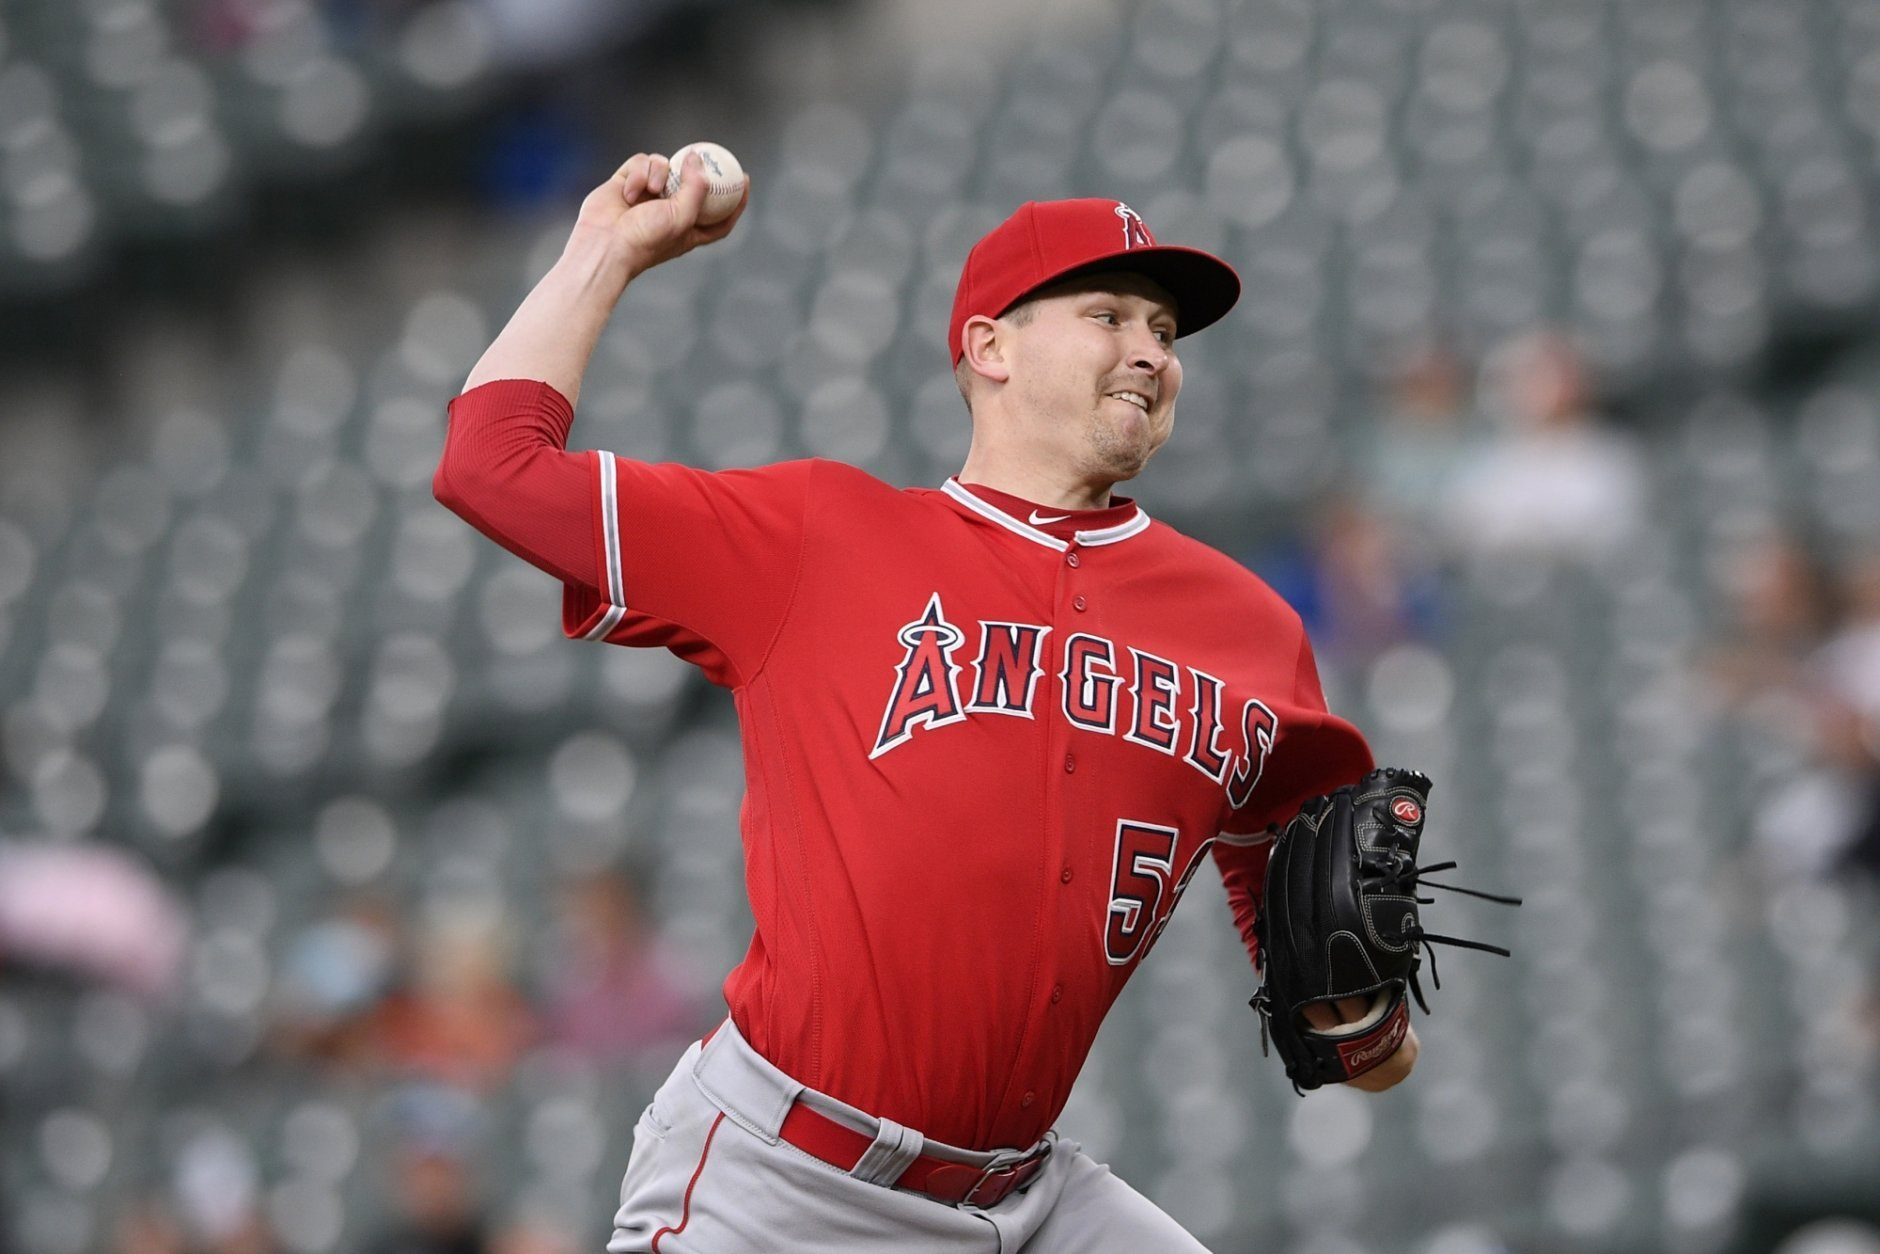 Los Angeles Angels starting pitcher Trevor Cahill throws during the first inning of the team's baseball game against the Baltimore Orioles, Friday, May 10, 2019, in Baltimore. (AP Photo/Nick Wass)